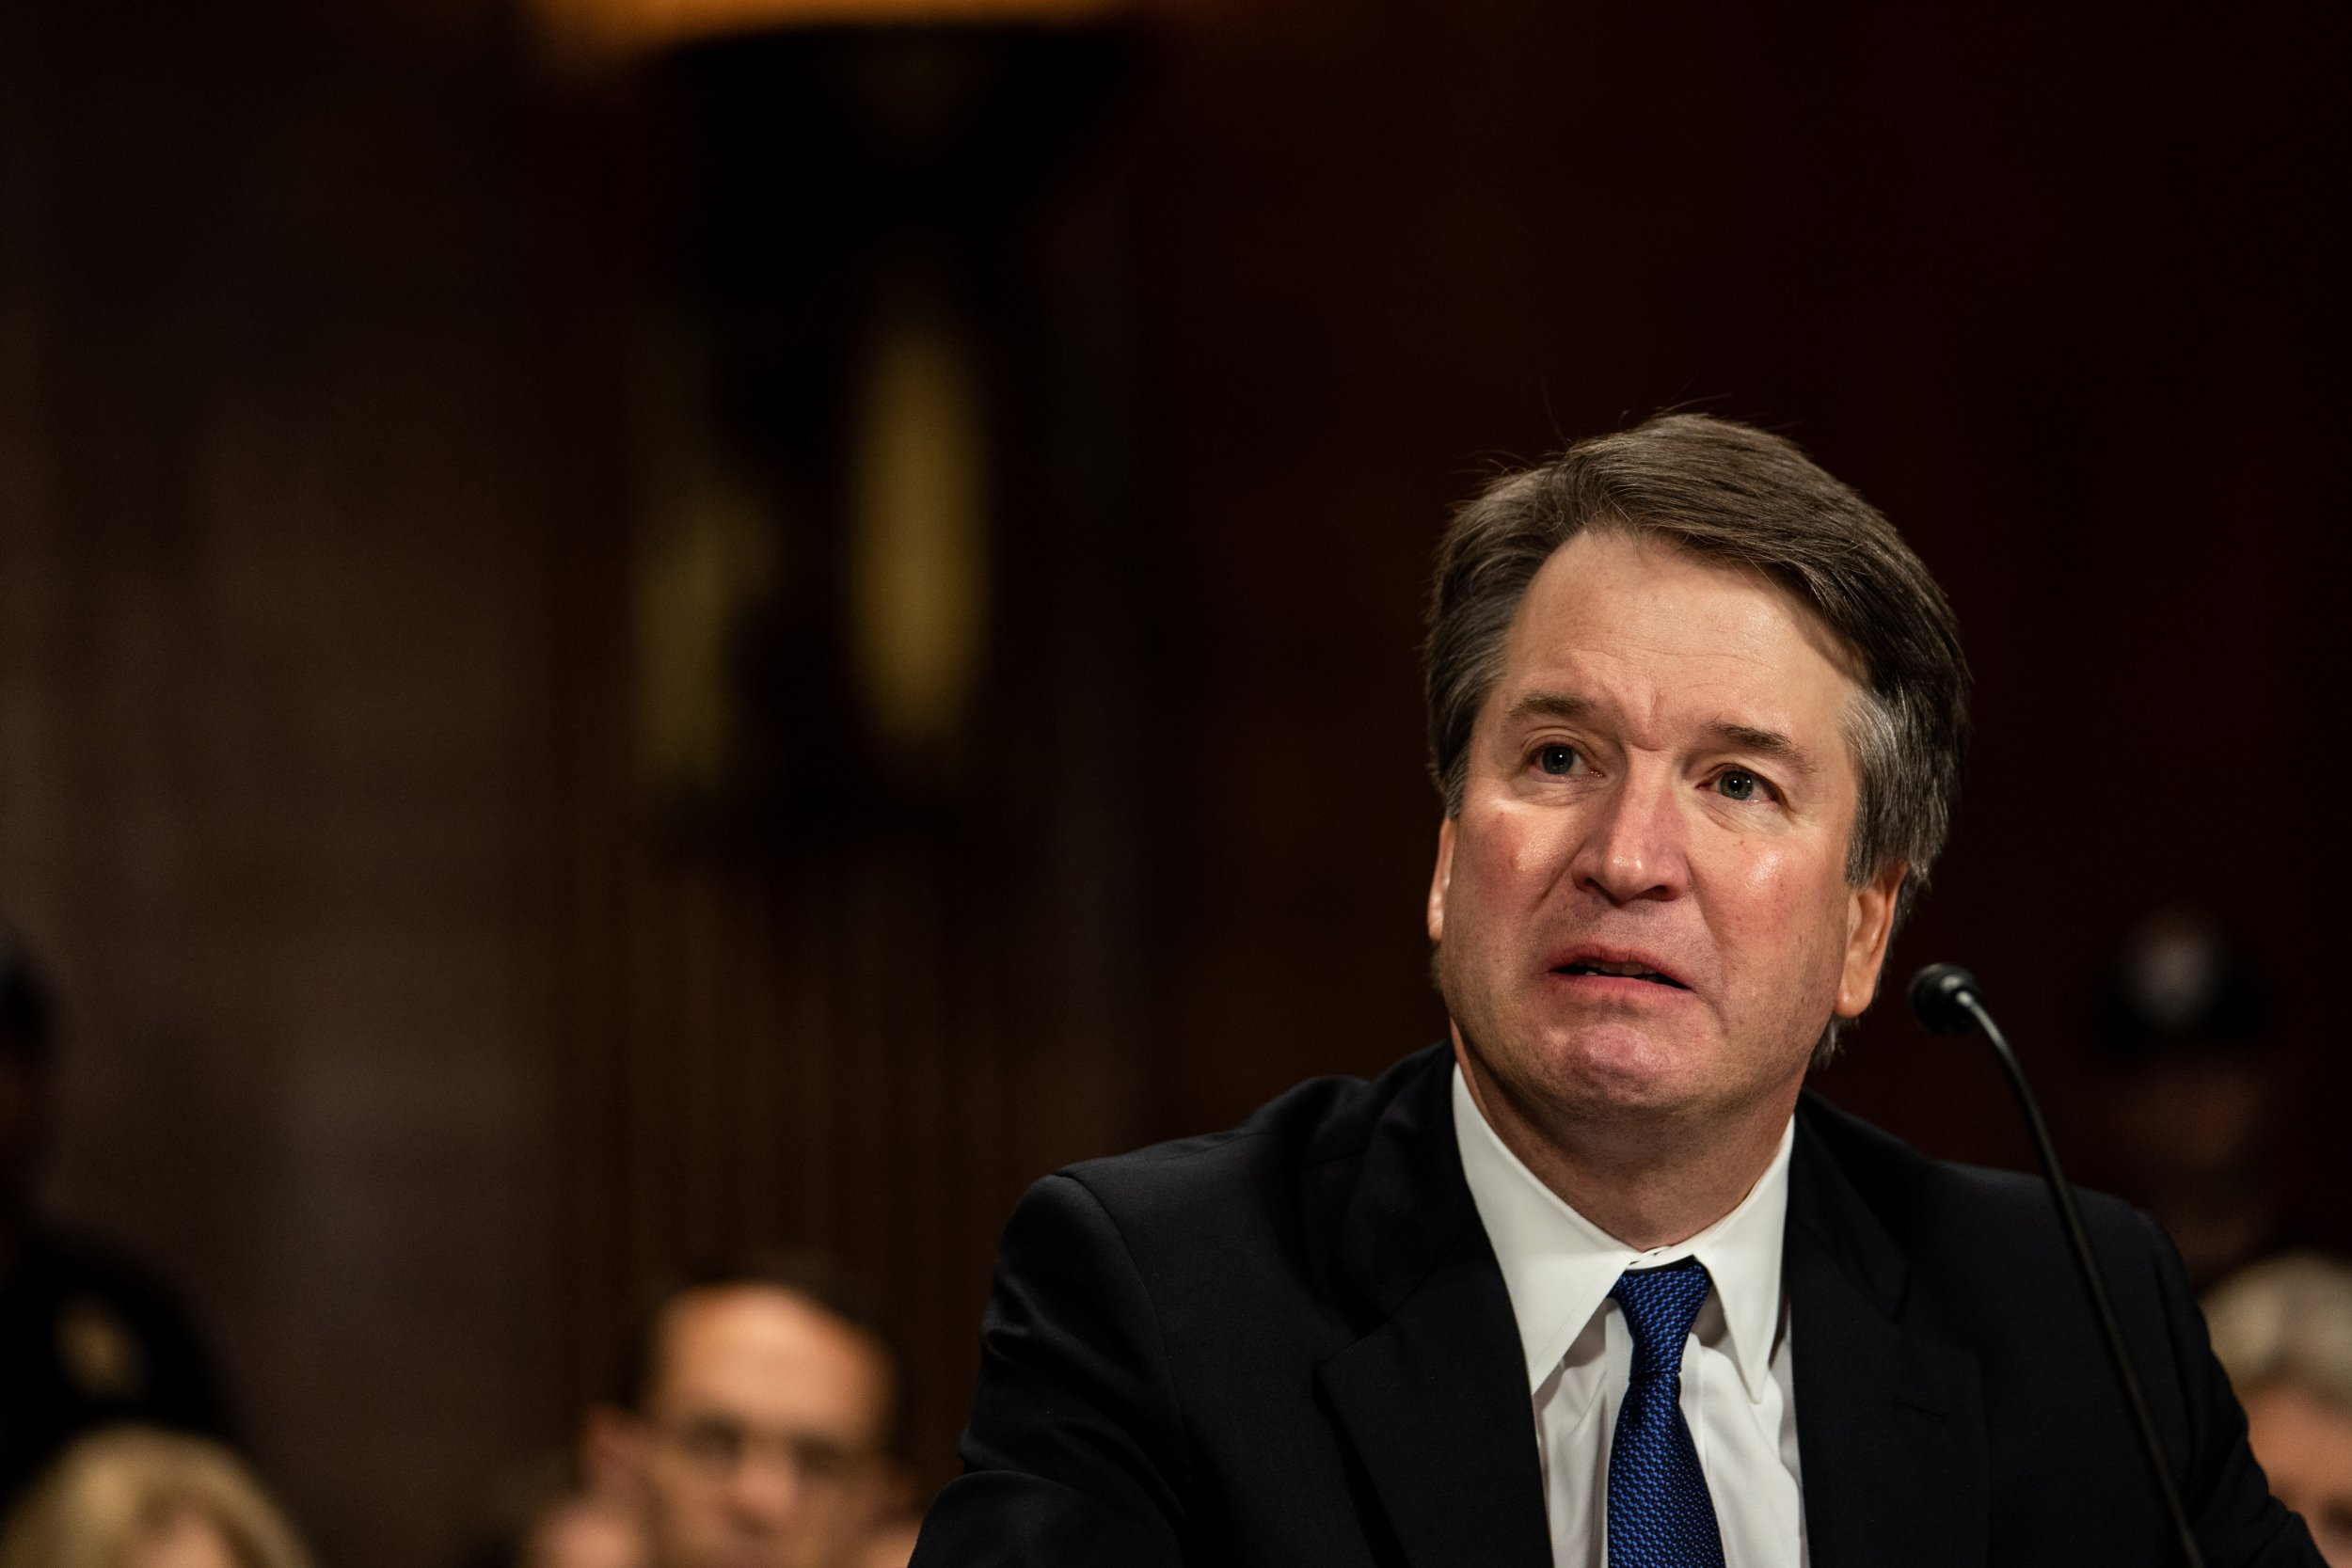 SEPTEMBER 27 - WASHINGTON, DC: Judge Brett M. Kavanaugh testified in front of the Senate Judiciary committee regarding sexual assault allegations at the Dirksen Senate Office Building on Capitol Hill Thursday, September 27, 2018. at a Senate Judiciary Committee hearing on September 27, 2018 on Capitol Hill. Blasey Ford, a professor at Palo Alto University and a research psychologist at the Stanford University School of Medicine, has accused Supreme Court nominee Brett Kavanaugh of sexually assaulting her during a party in 1982 when they were high school students in suburban Maryland. (Photo by Erin Schaff-Pool/Getty Images)